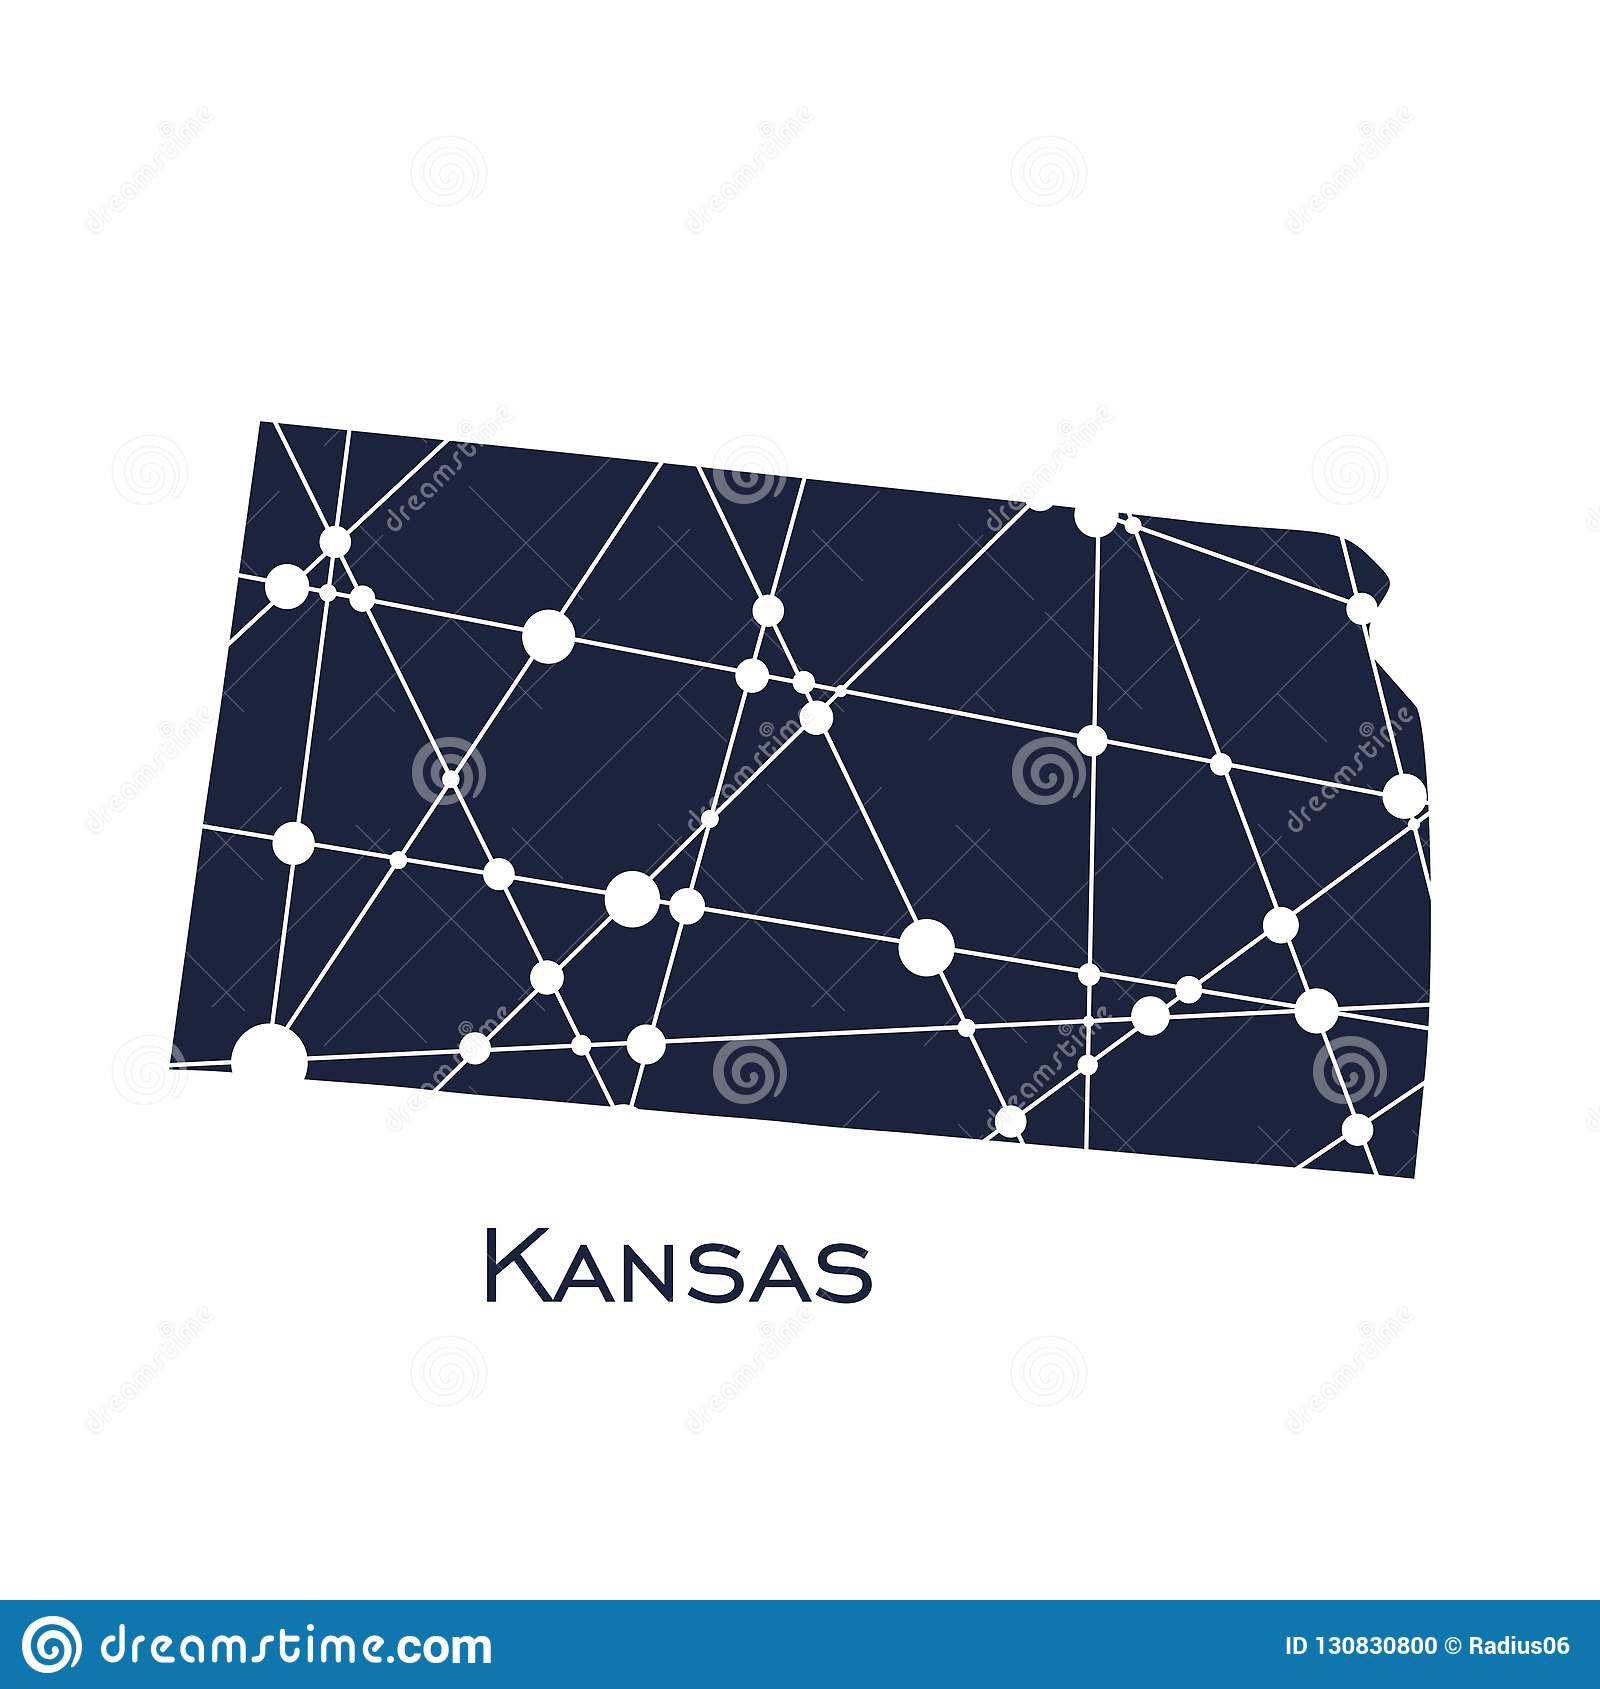 Kansas state map stock vector. Illustration of outline - 130830800 on columbia map usa, washington state map usa, ole miss map usa, kansas on the map, kansas on map of usa, unlv map usa, new york on map of usa, kansas map with counties, tulsa map usa, kansas political map, mississippi map usa, kansas landscape usa, yale map usa, kansas map with cities only, providence map usa, maryland state map of usa, akron map usa, kansas mountains map, kansas on us map, oklahoma map usa,